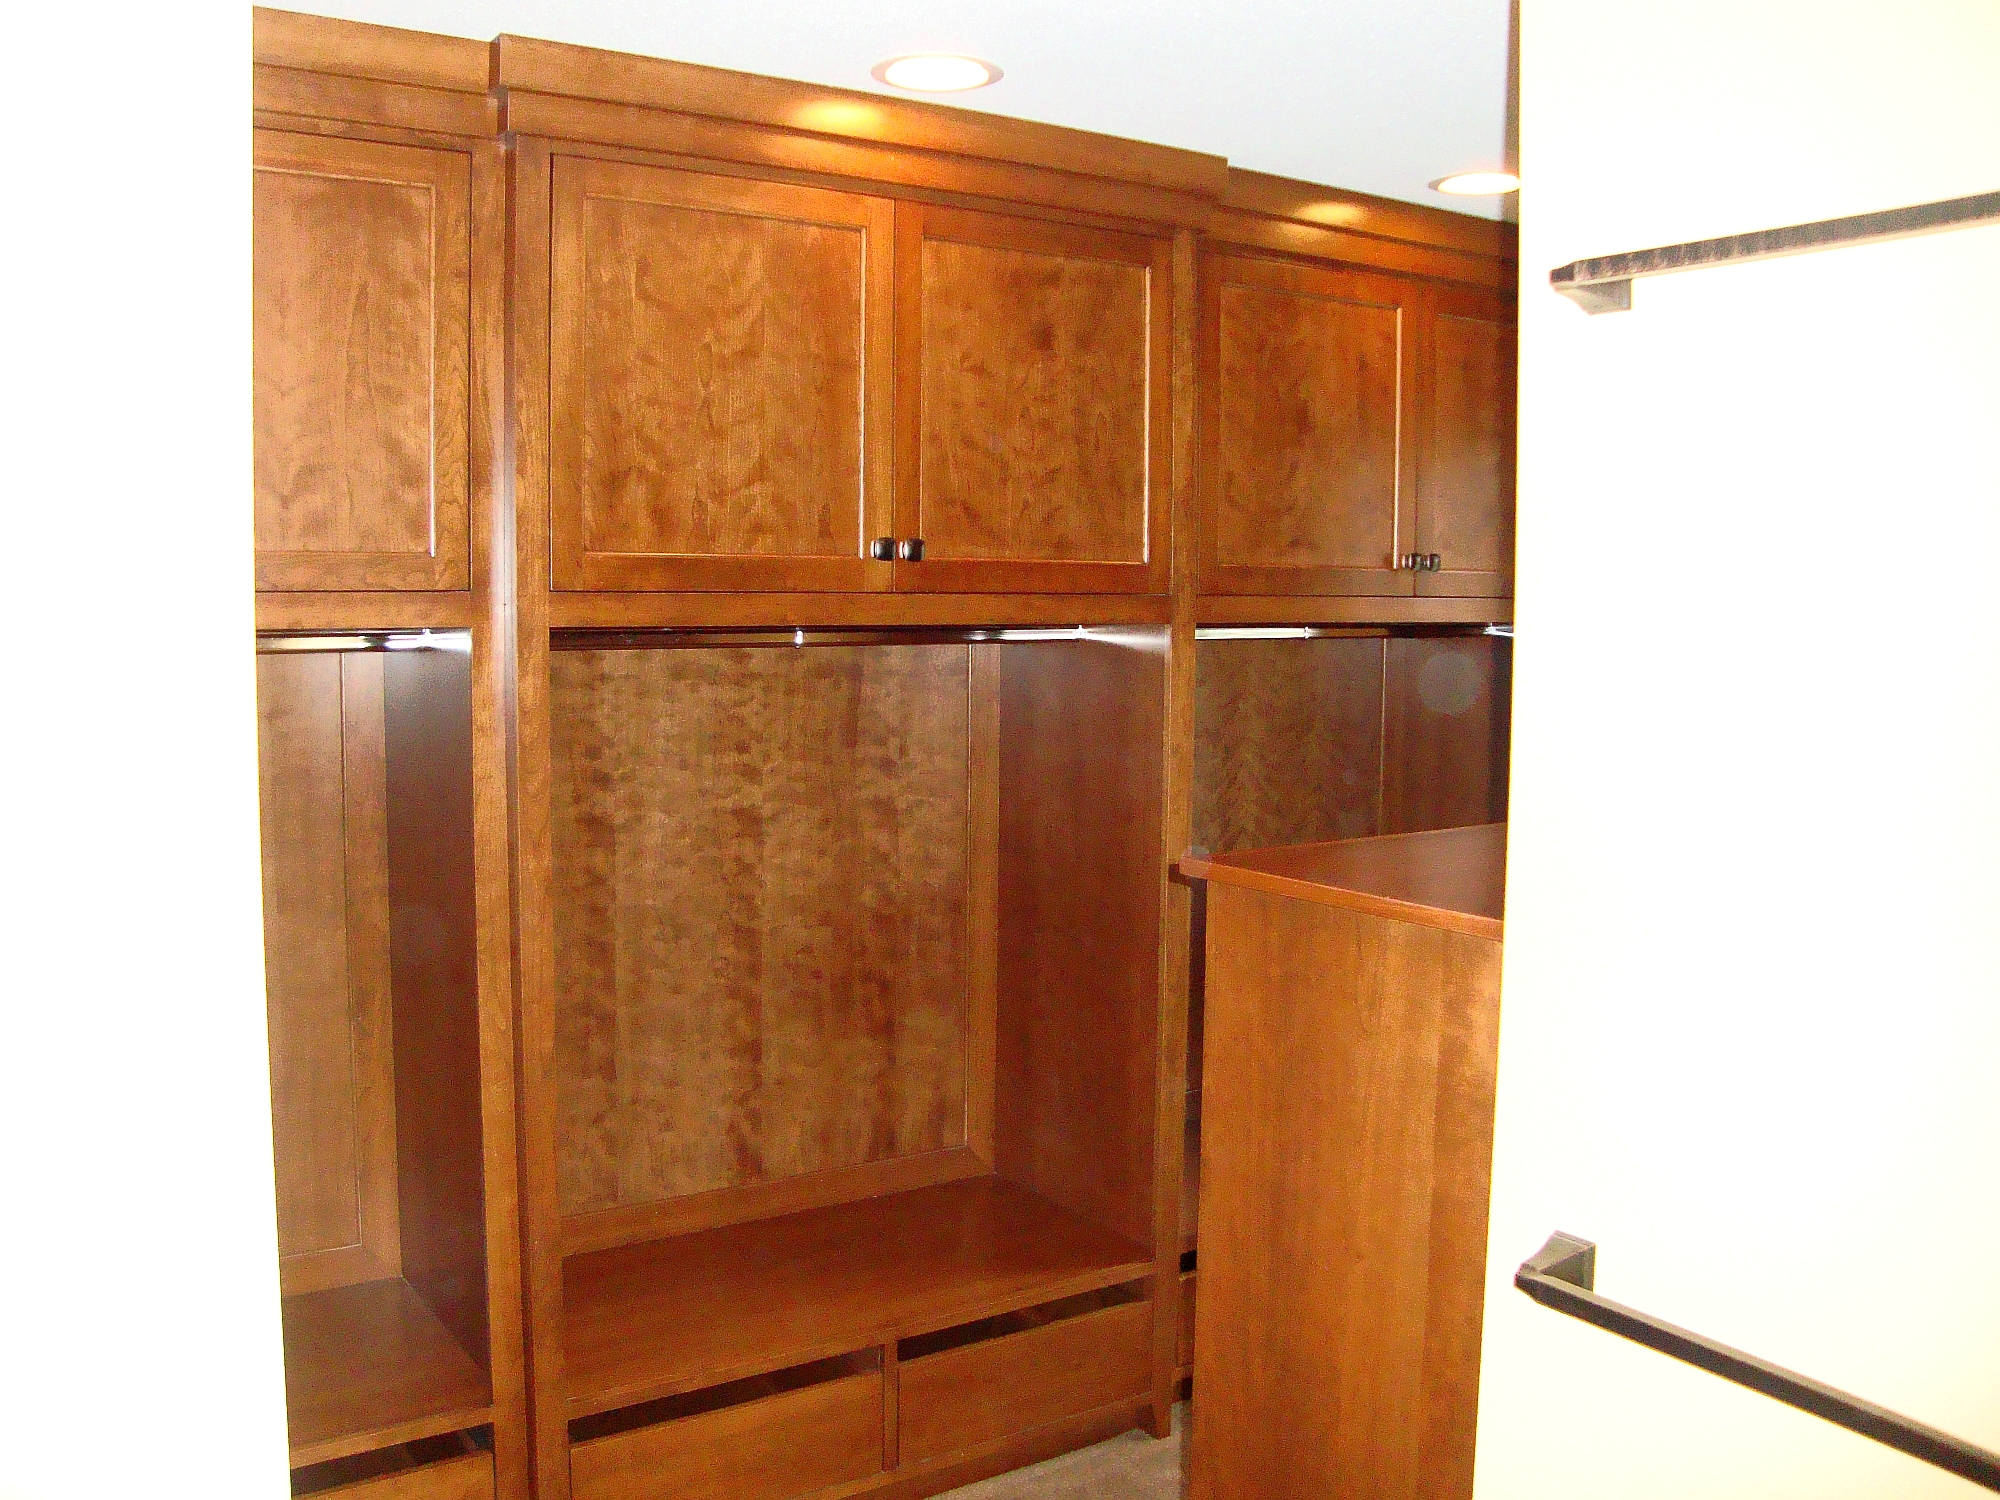 Photo highlights nerstrand custom cabinets for A 1 custom cabinets